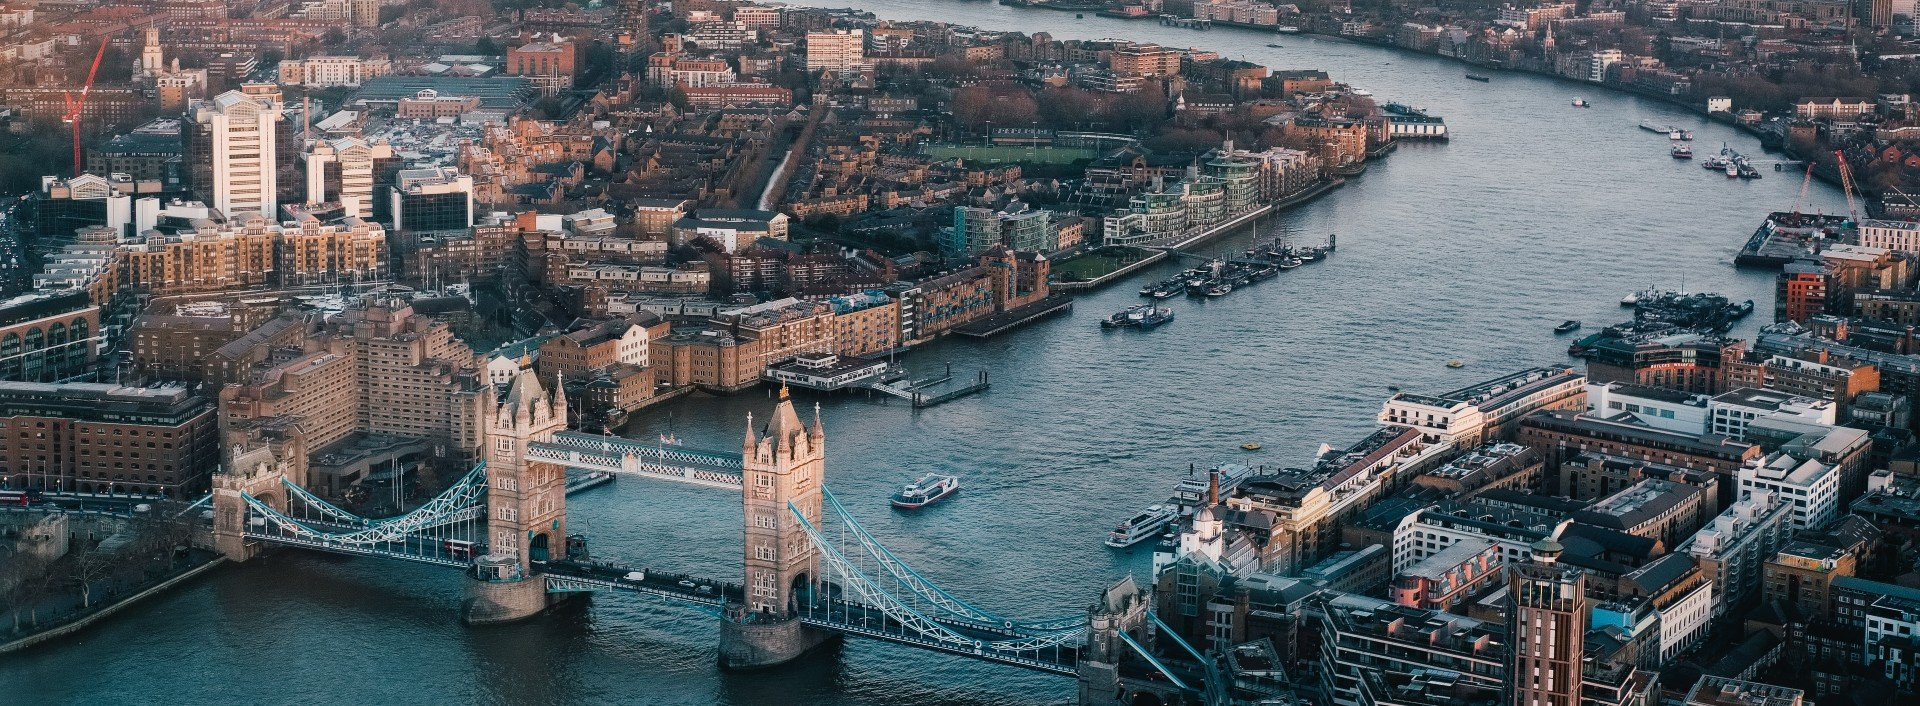 British Idioms: an aerial view of London, showing Tower Bridge and the River Thames